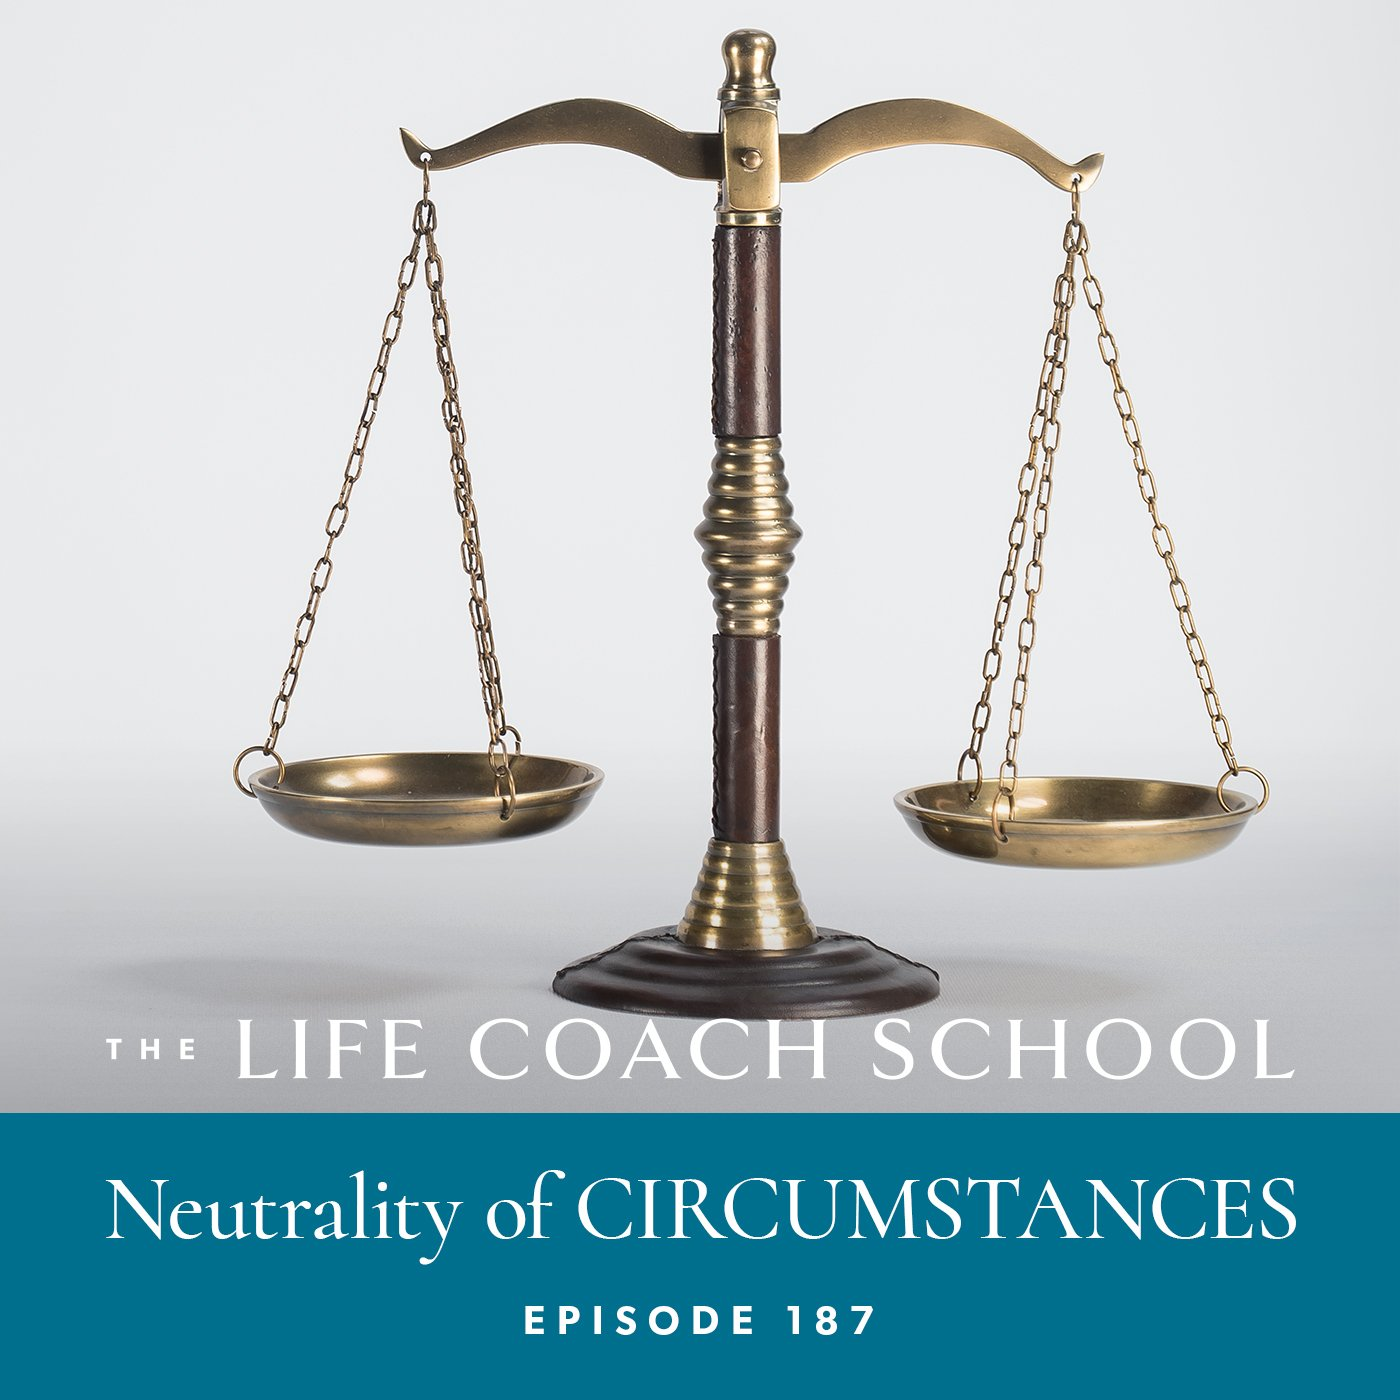 The Life Coach School Podcast with Brooke Castillo | Episode 187 | Neutrality of CIRCUMSTANCES